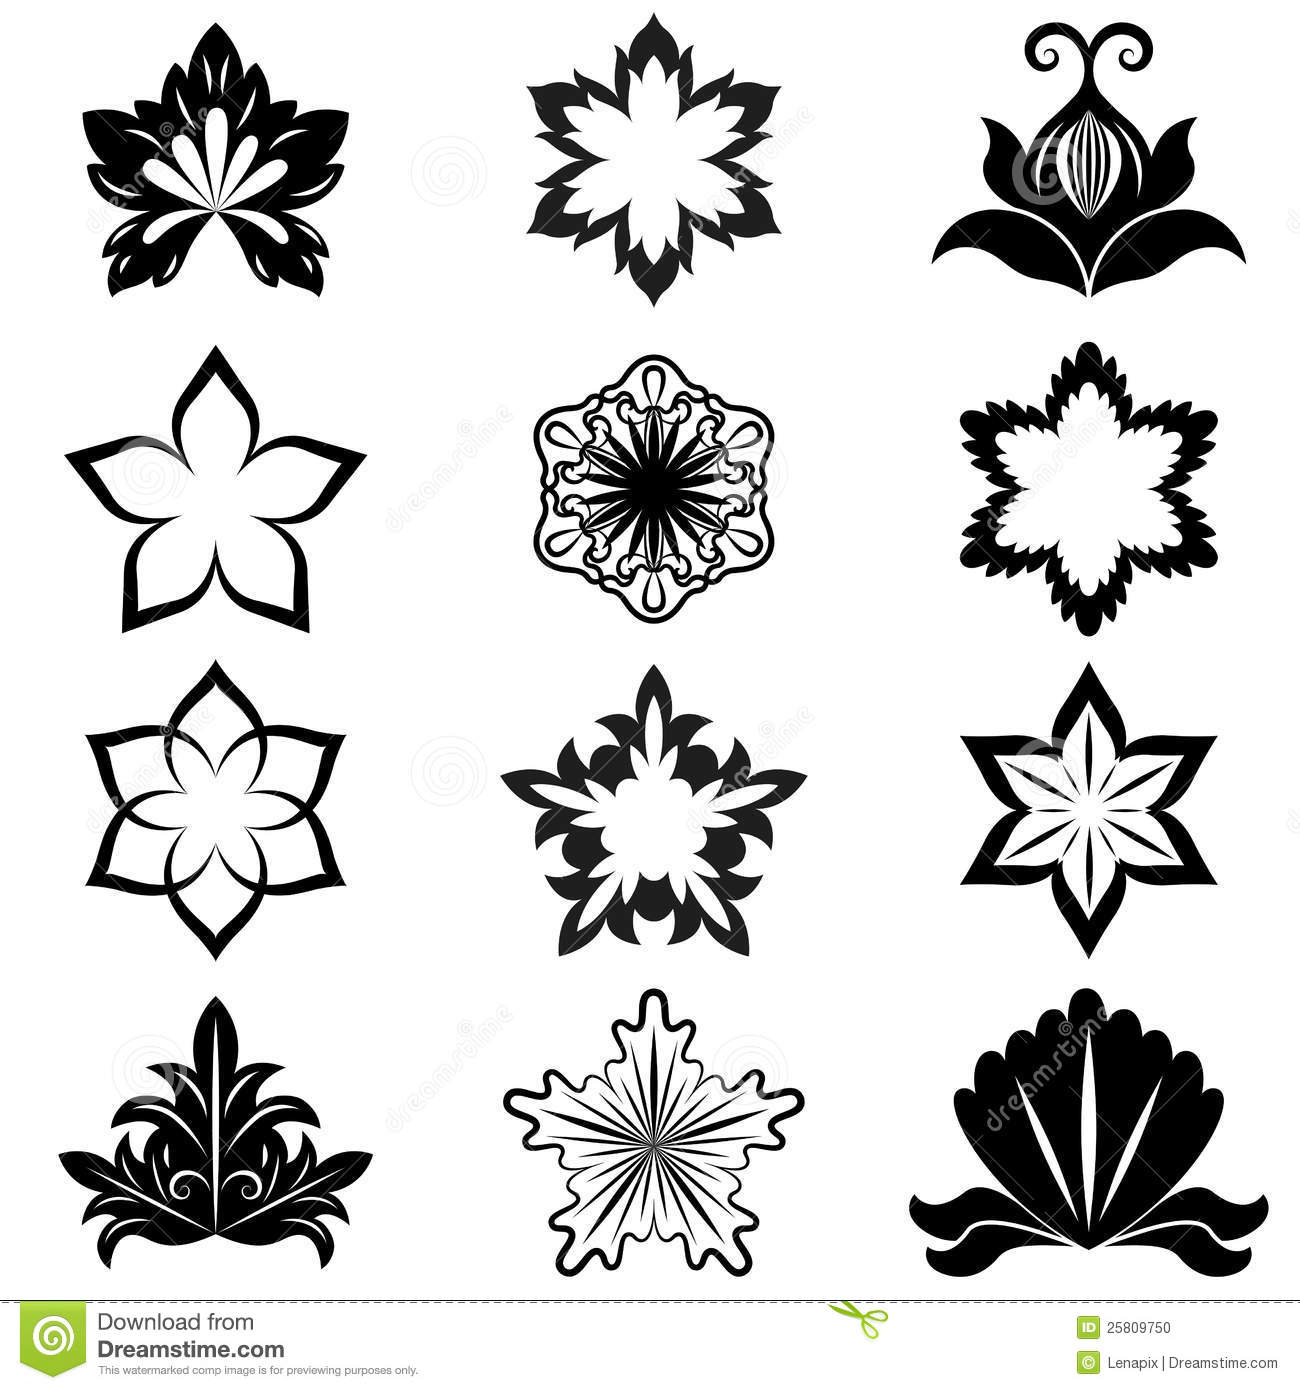 Black and white flower design stock vector illustration of border black and white flower design mightylinksfo